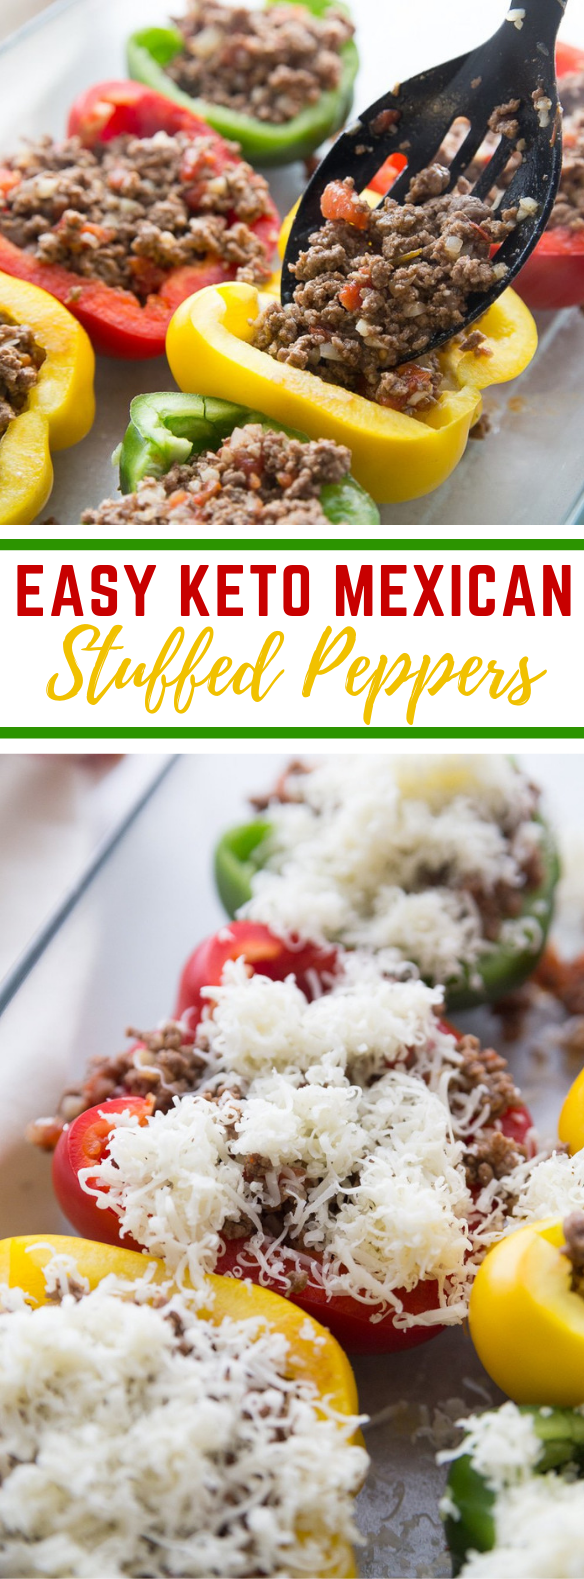 KETO MEXICAN STUFFED PEPPERS: EASY, HEARTY & FLAVORFUL #ketodiet #simplerecipe